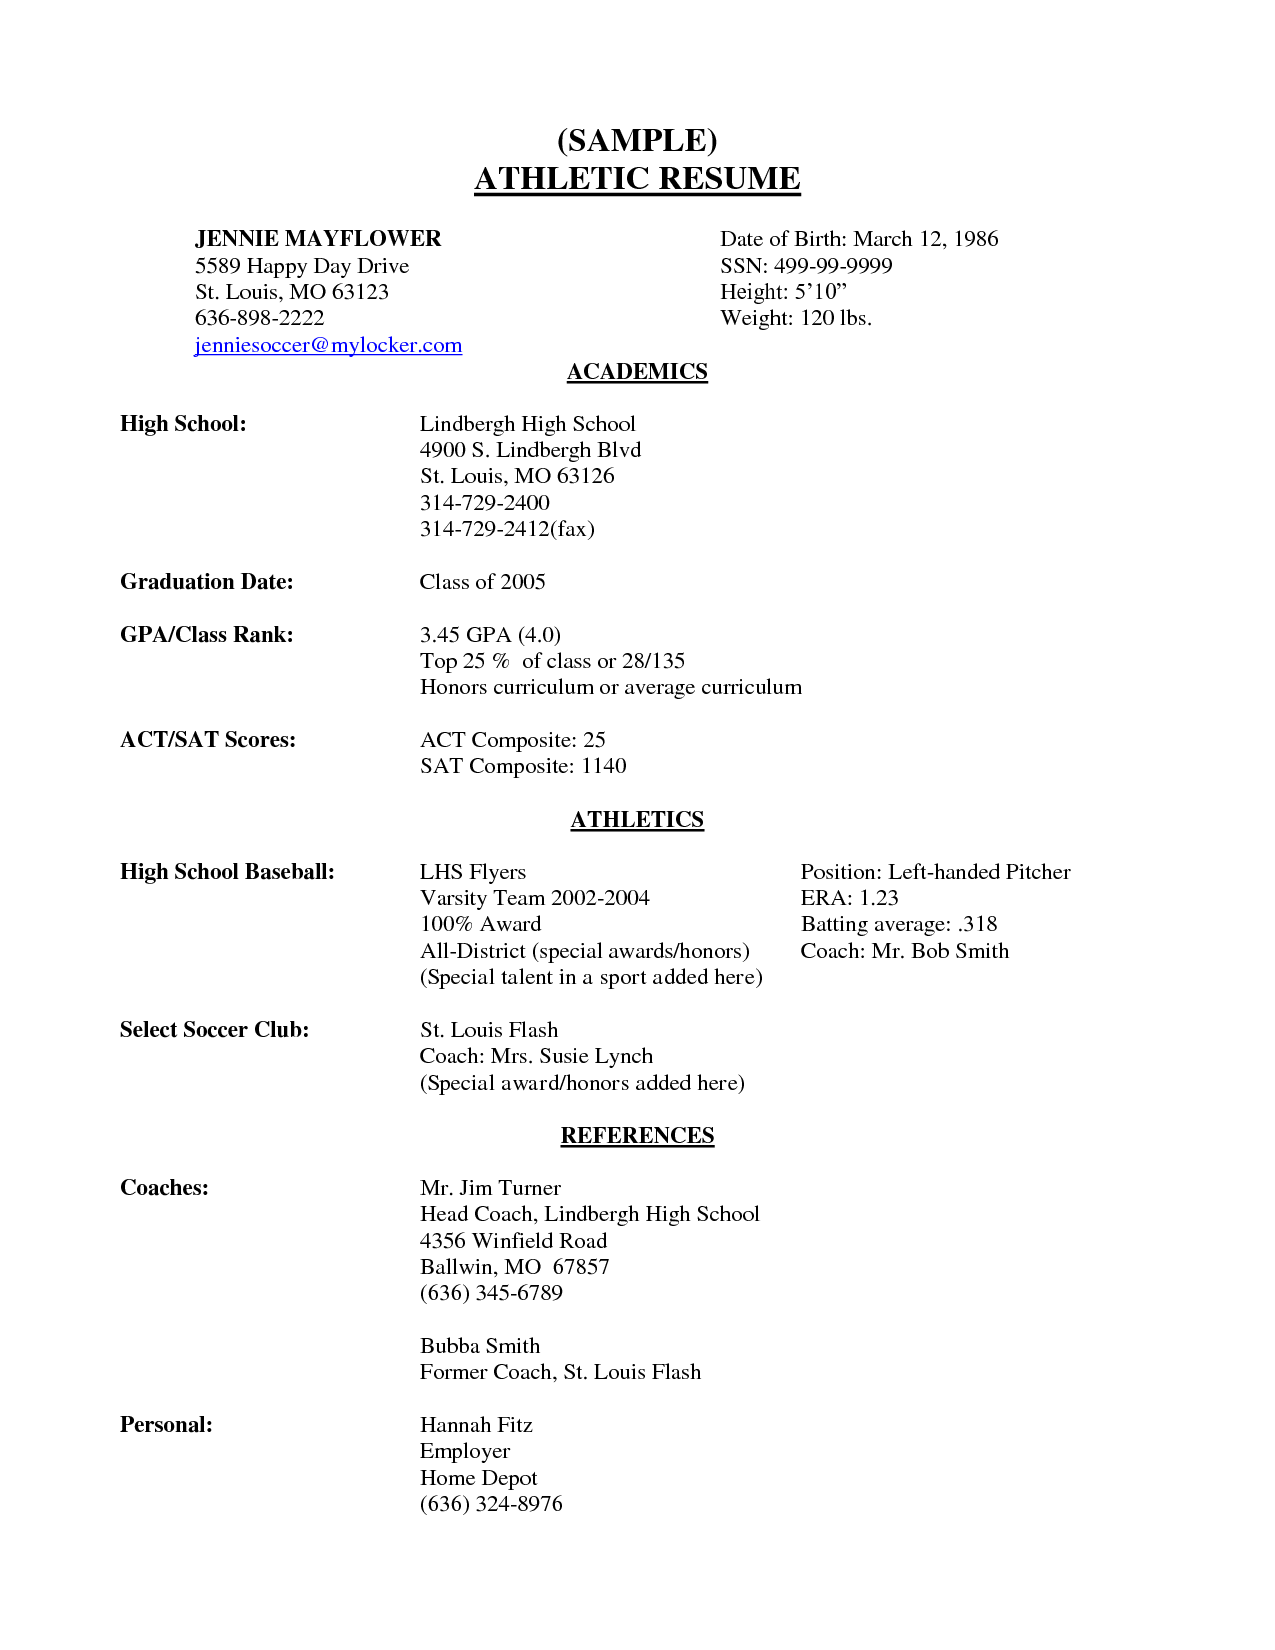 High School Senior Resume Sample Scope Of Work Template Quotes3